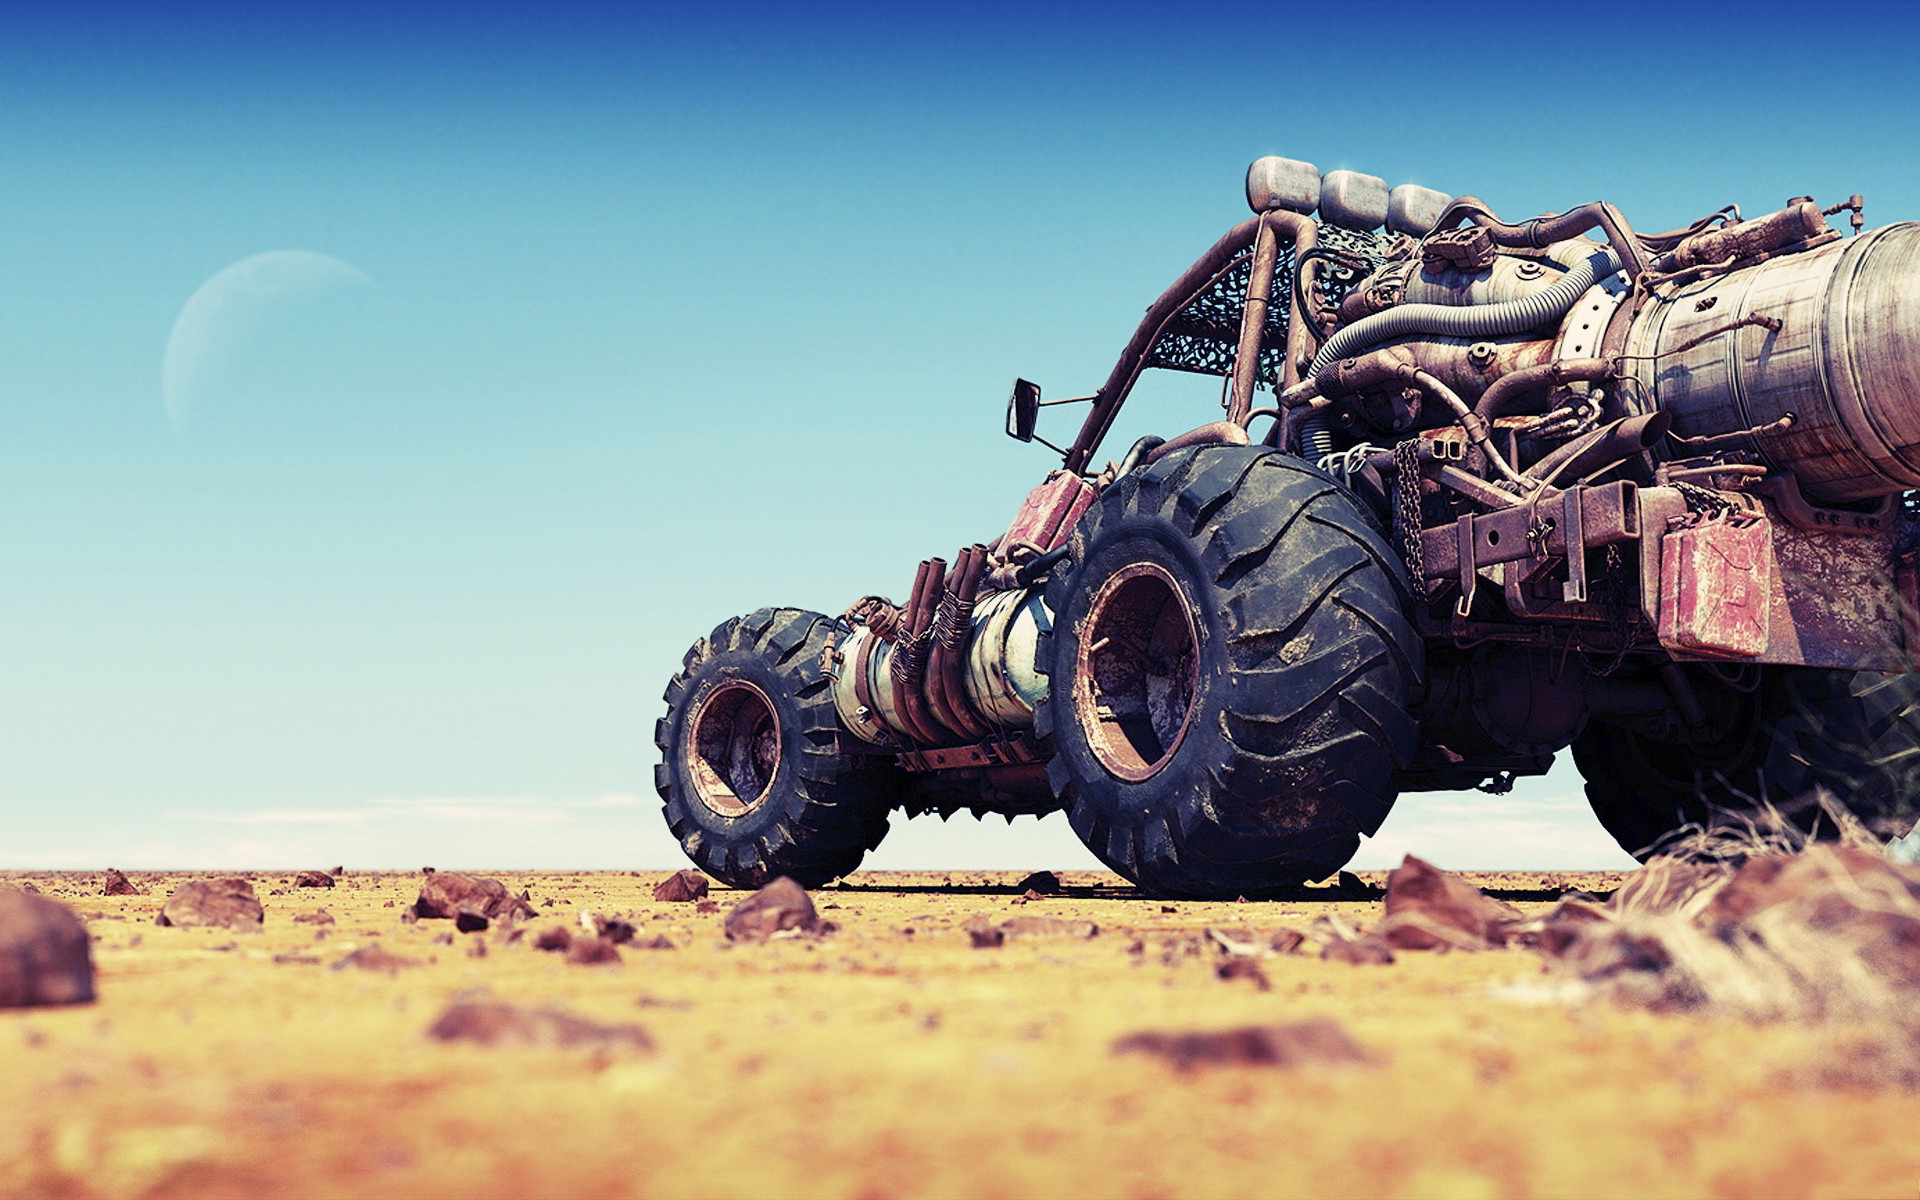 Buggy mad max